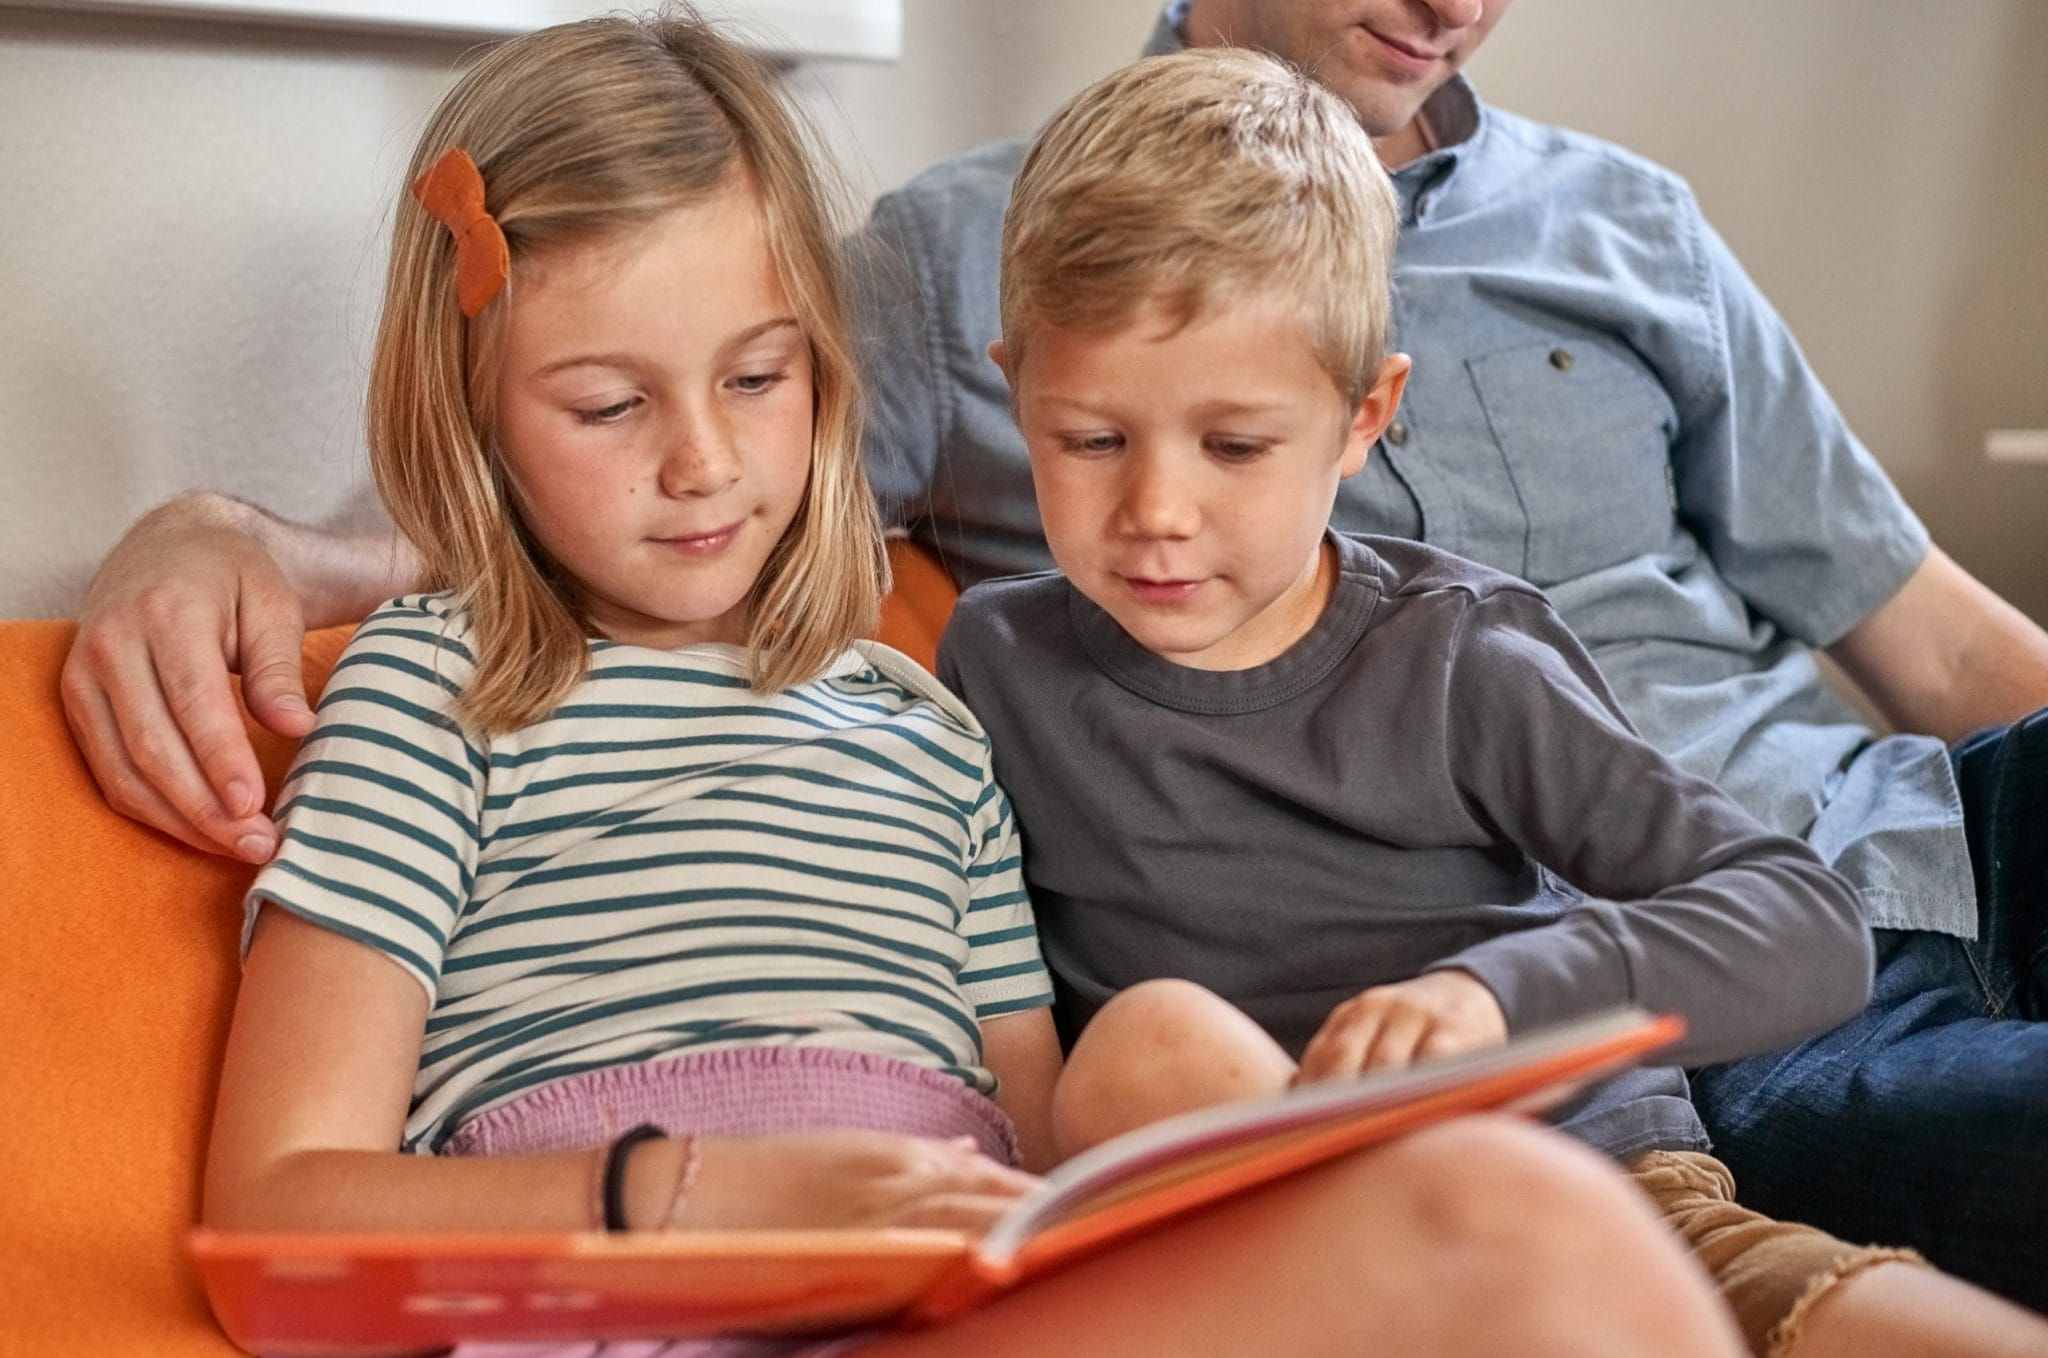 Closeup of the kids reading in the new playroom